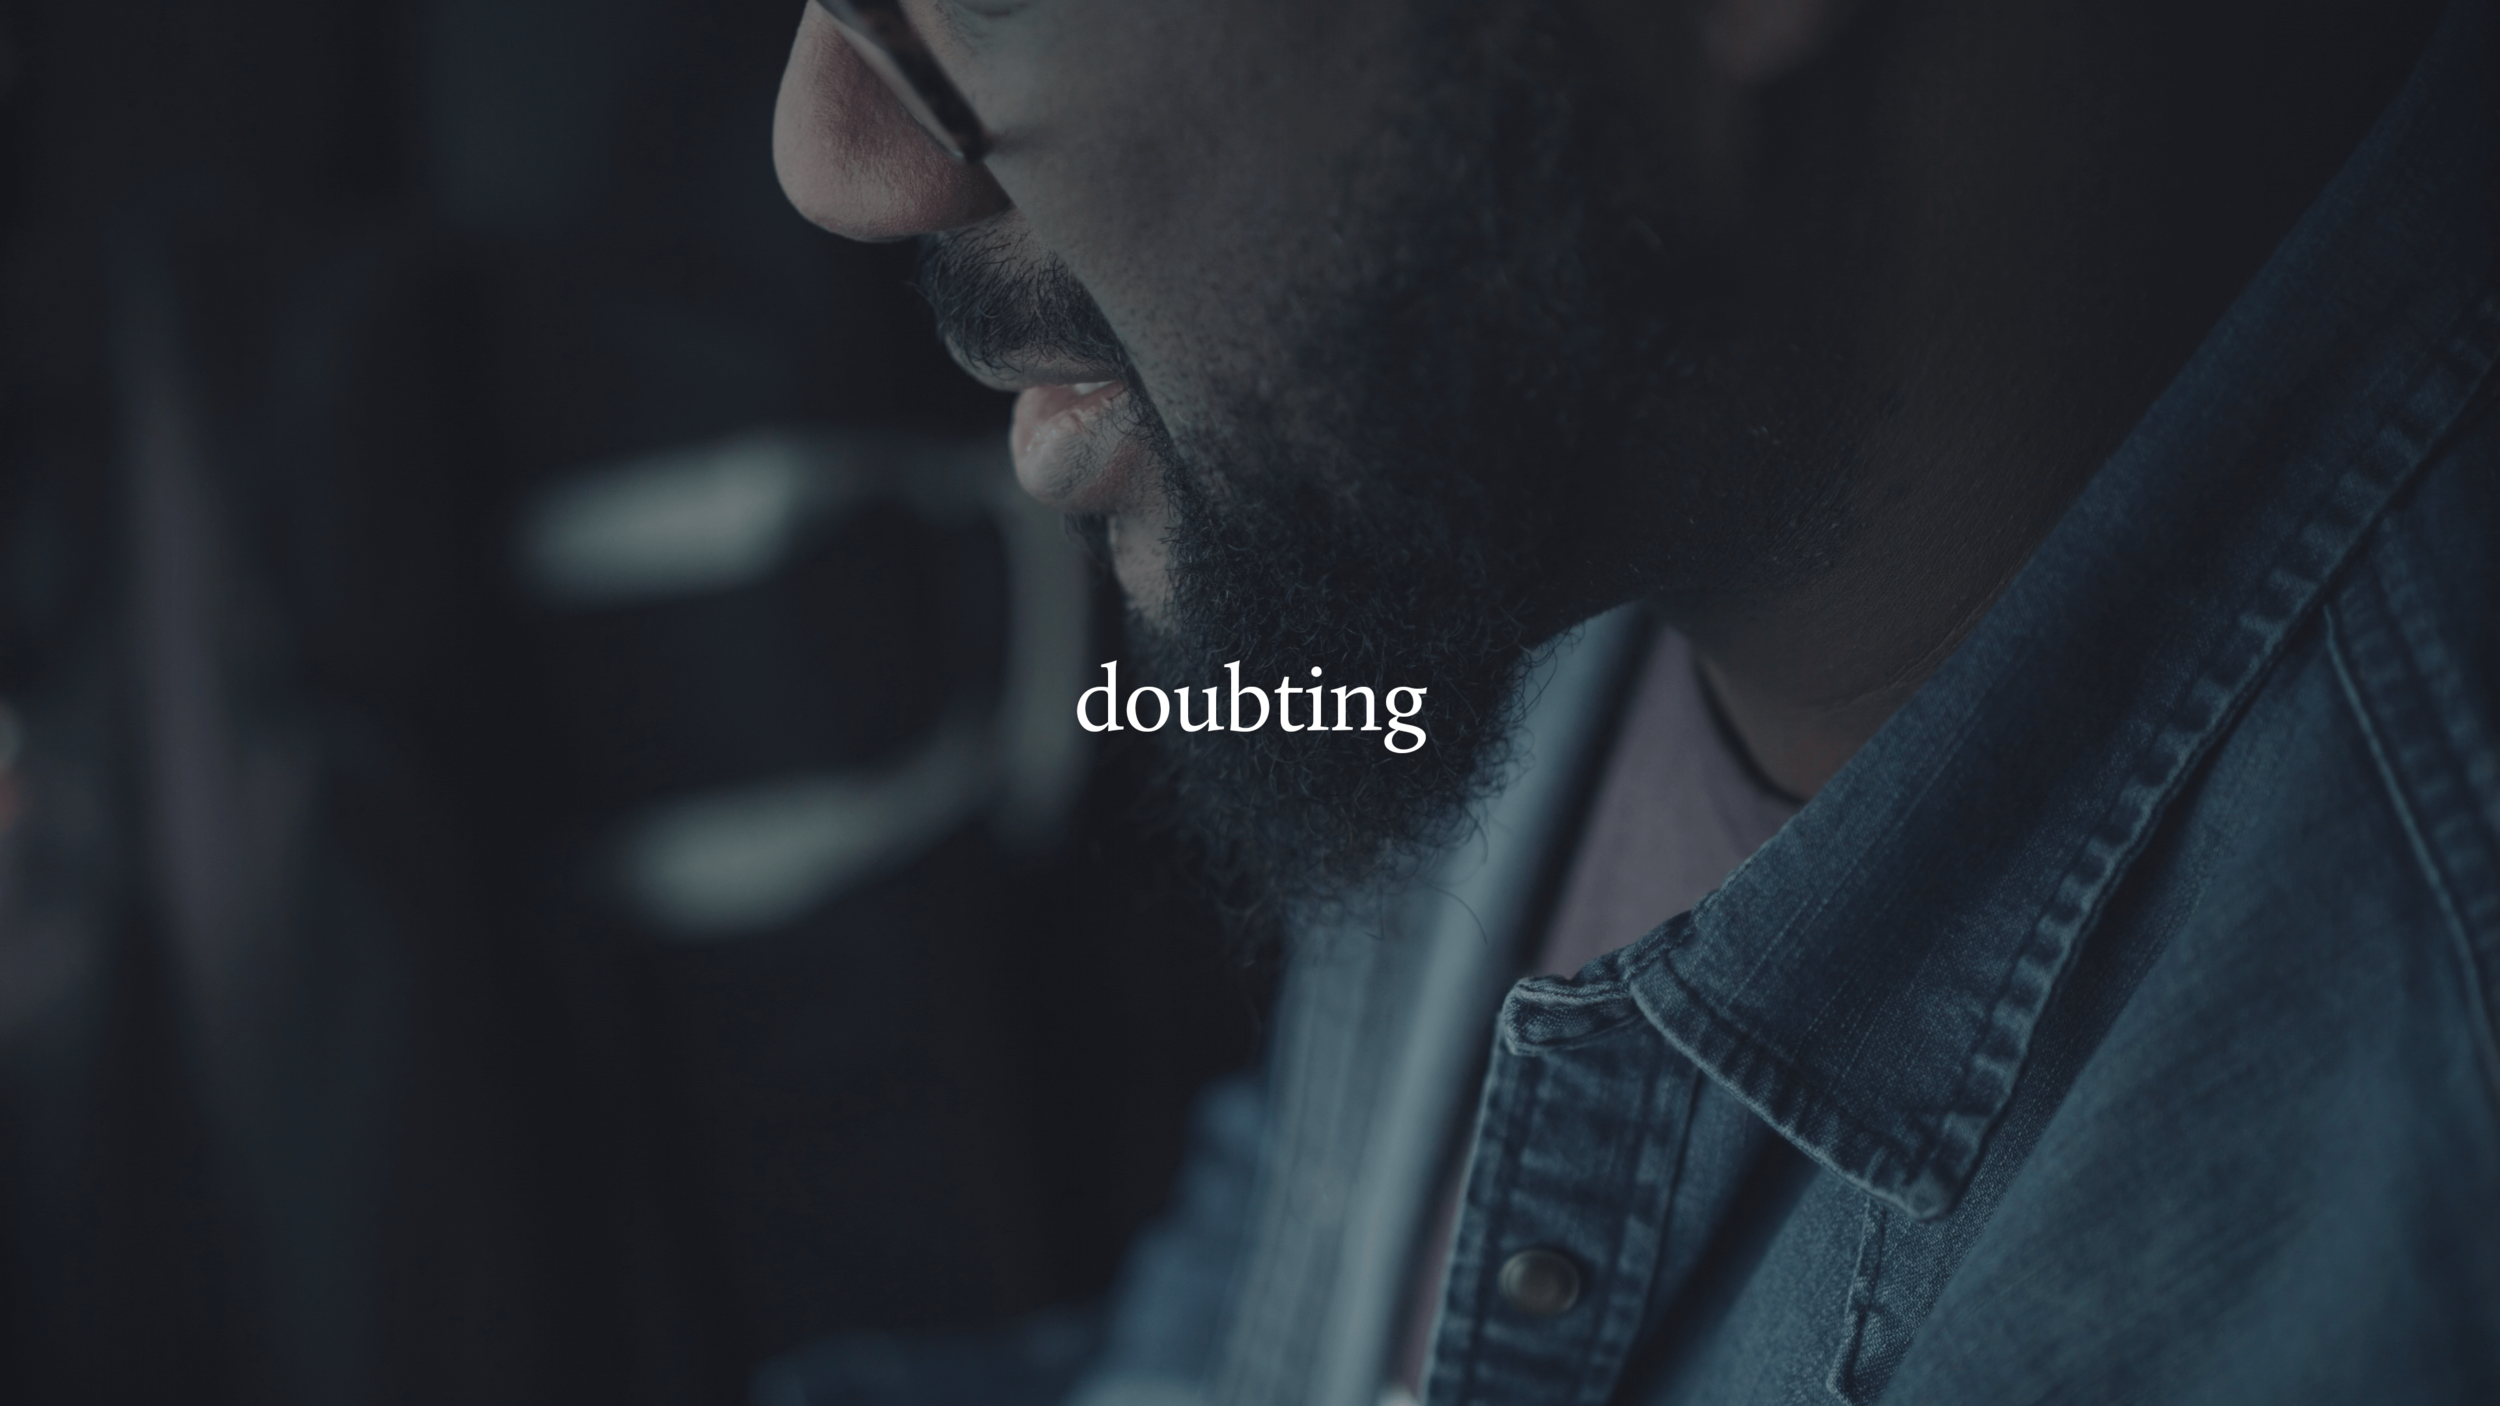 2-Doubting.png